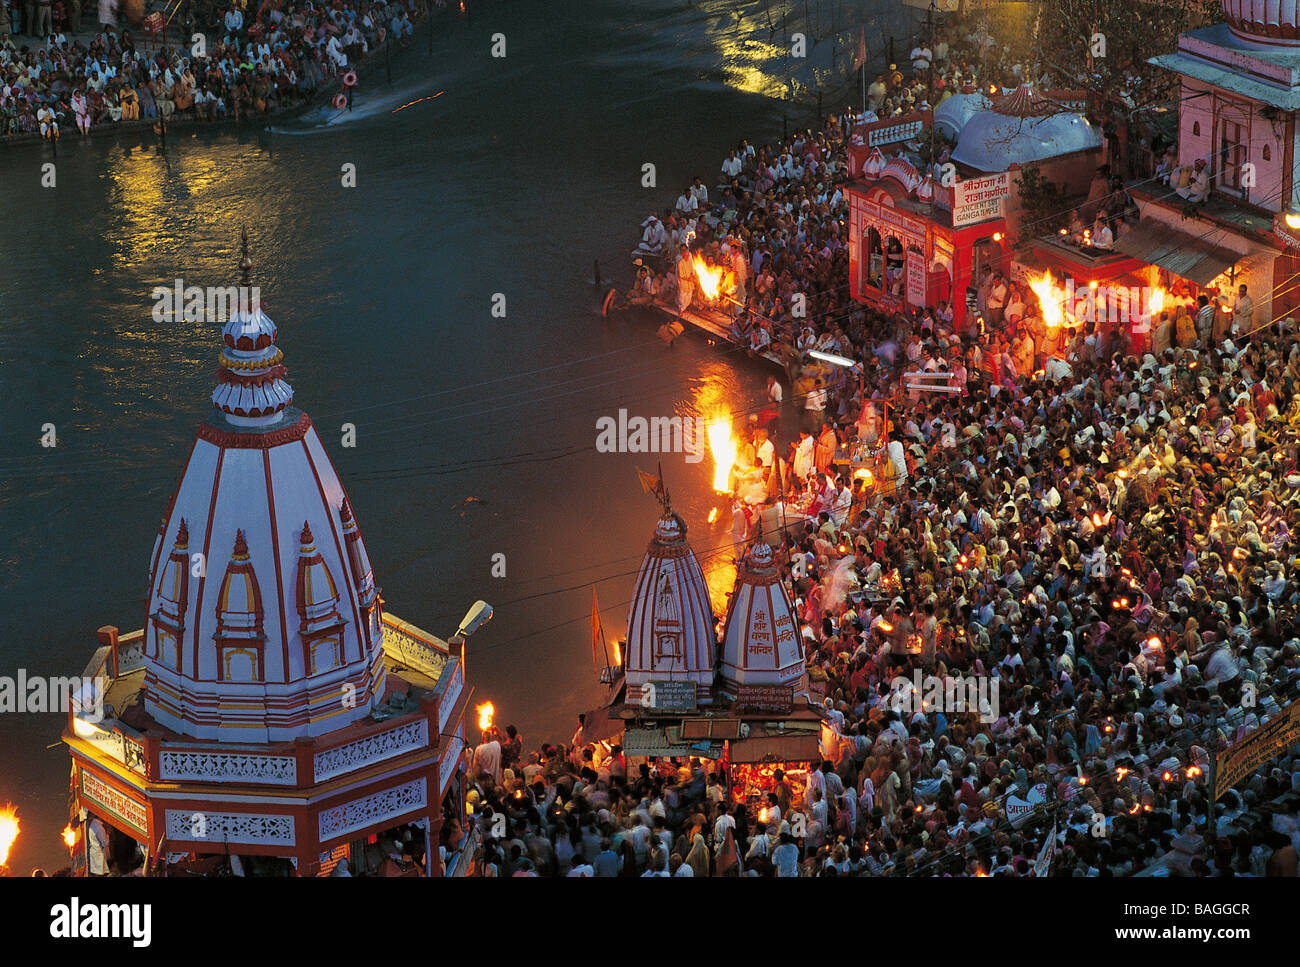 India, Uttarakhand, Haridwar, the Kumbh Mela is a Hindu pilgrimage that occurs four times every twelve years and - Stock Image